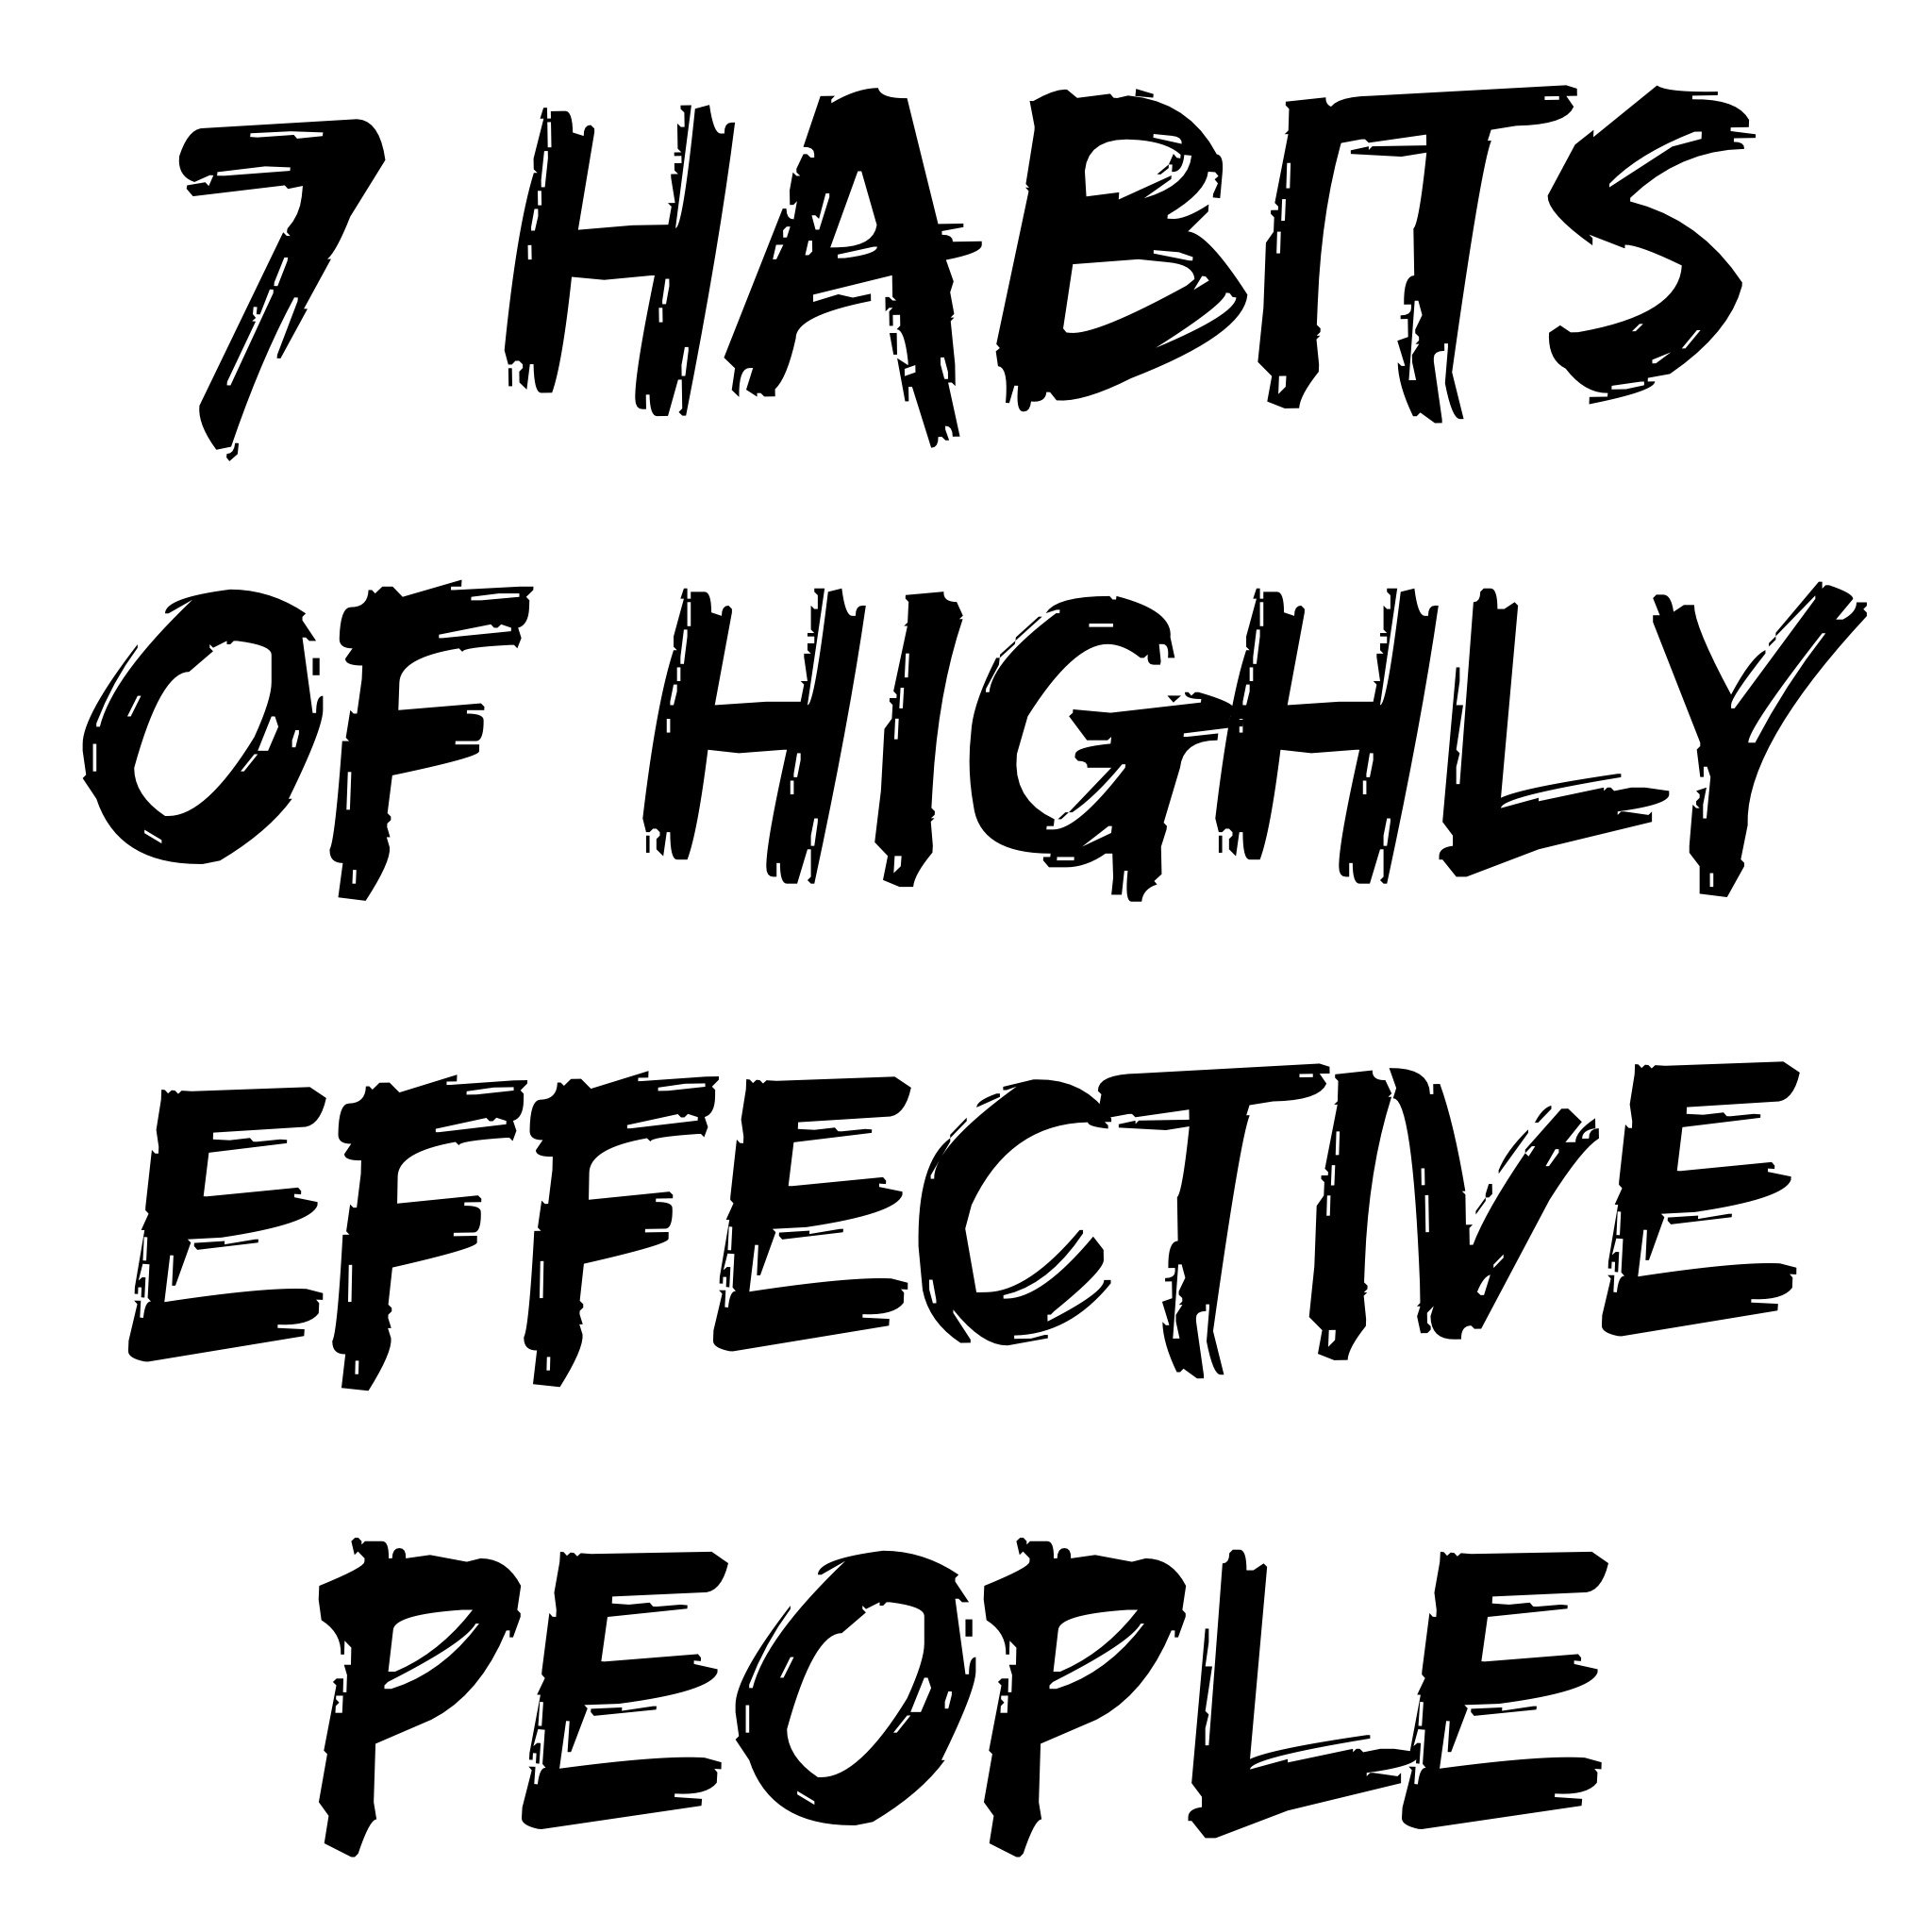 7 habits of highly effective people research paper Position paper on stephen covey's, seven habits of highly effective people mg 401 senior seminar in management introduction in 1989, stephen covey's book the 7 habits of highly effective people started a landmark revolution in how we think about time and life management.